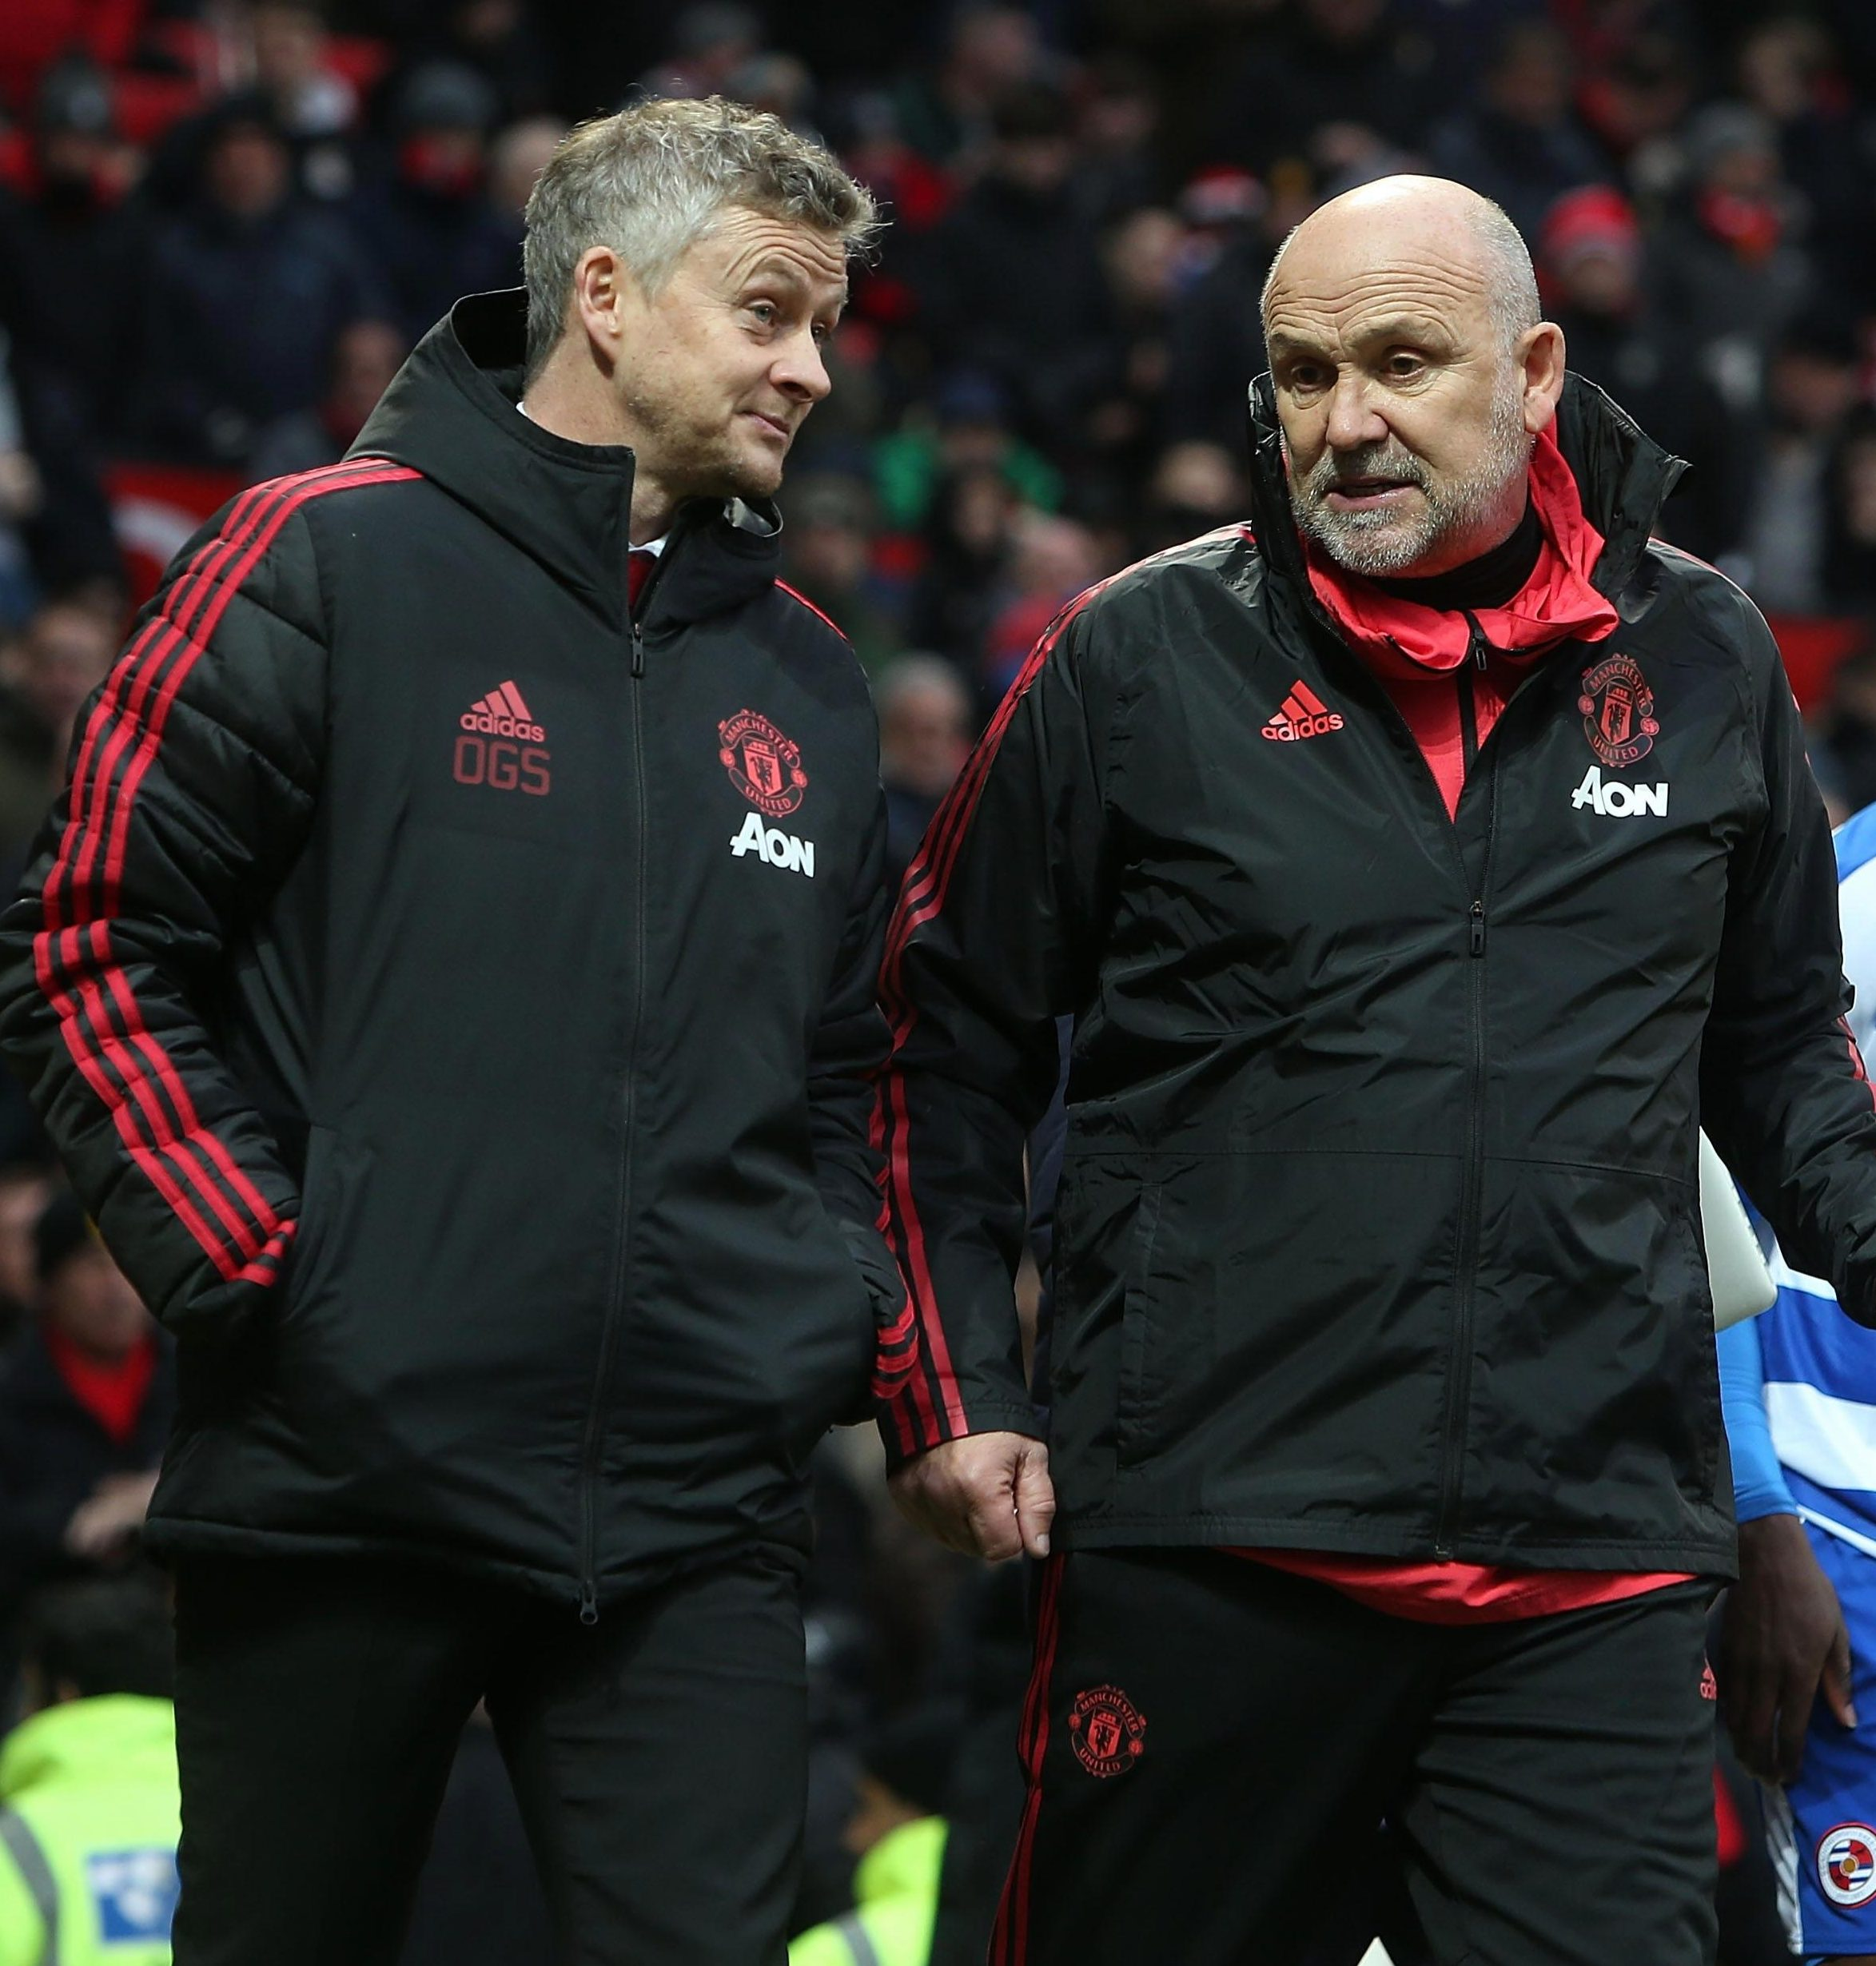 Everyone at United has enjoyed Phelan's return- he's got the team playing more exciting football again